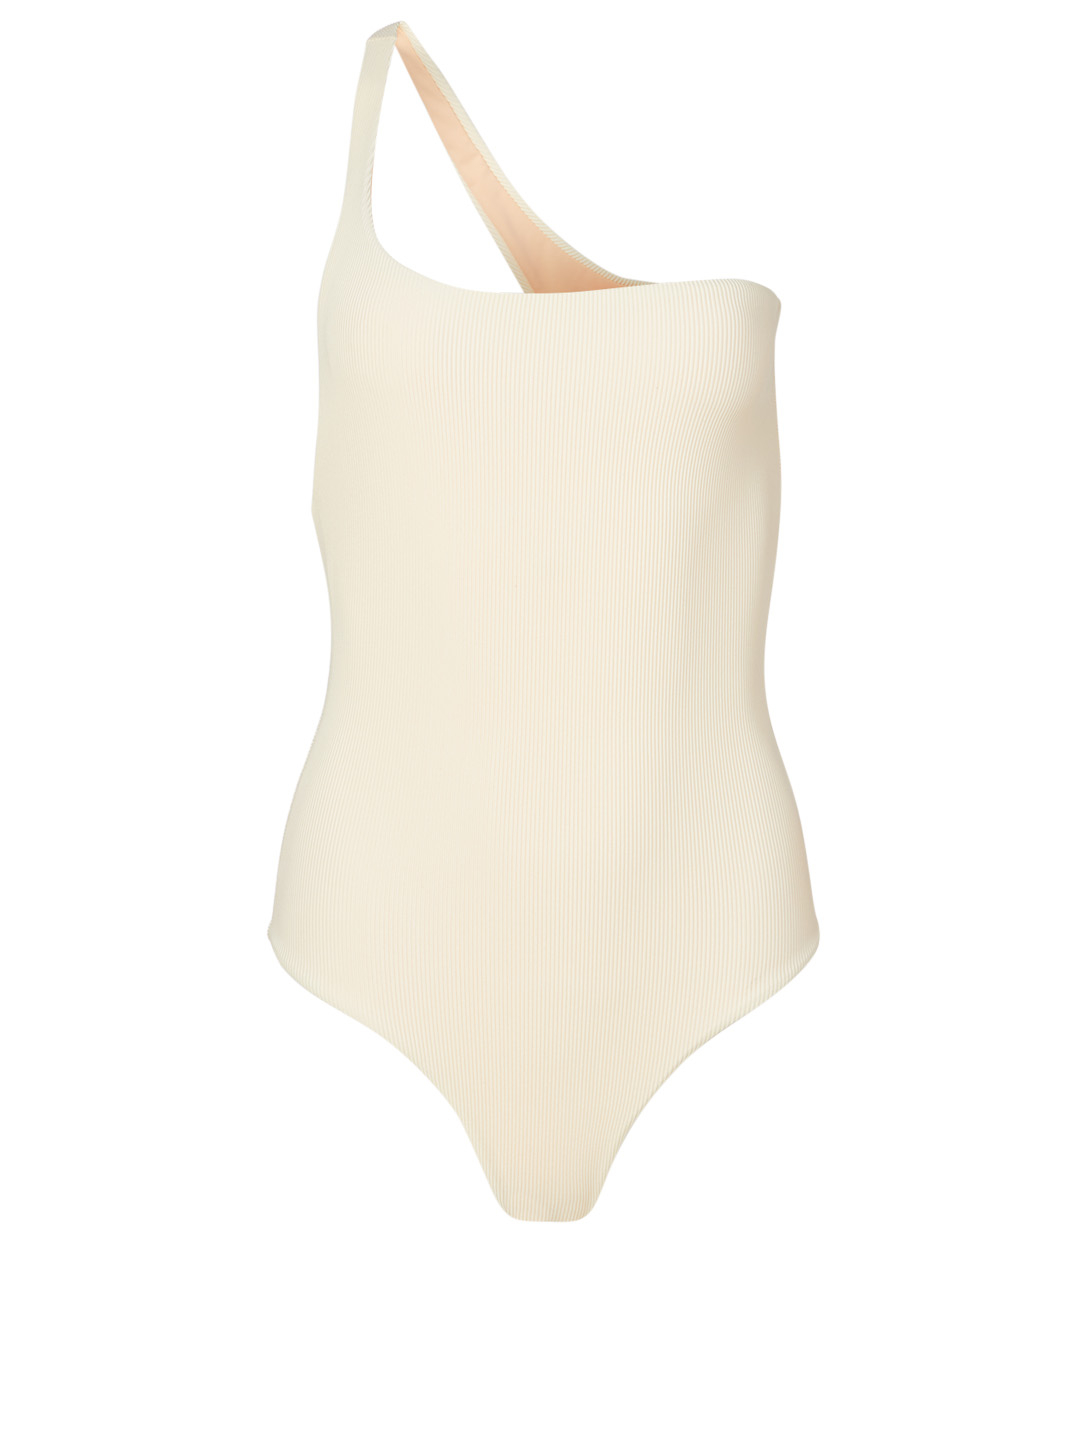 JADE SWIM Evolve One-Shoulder One-Piece Swimsuit H Project White